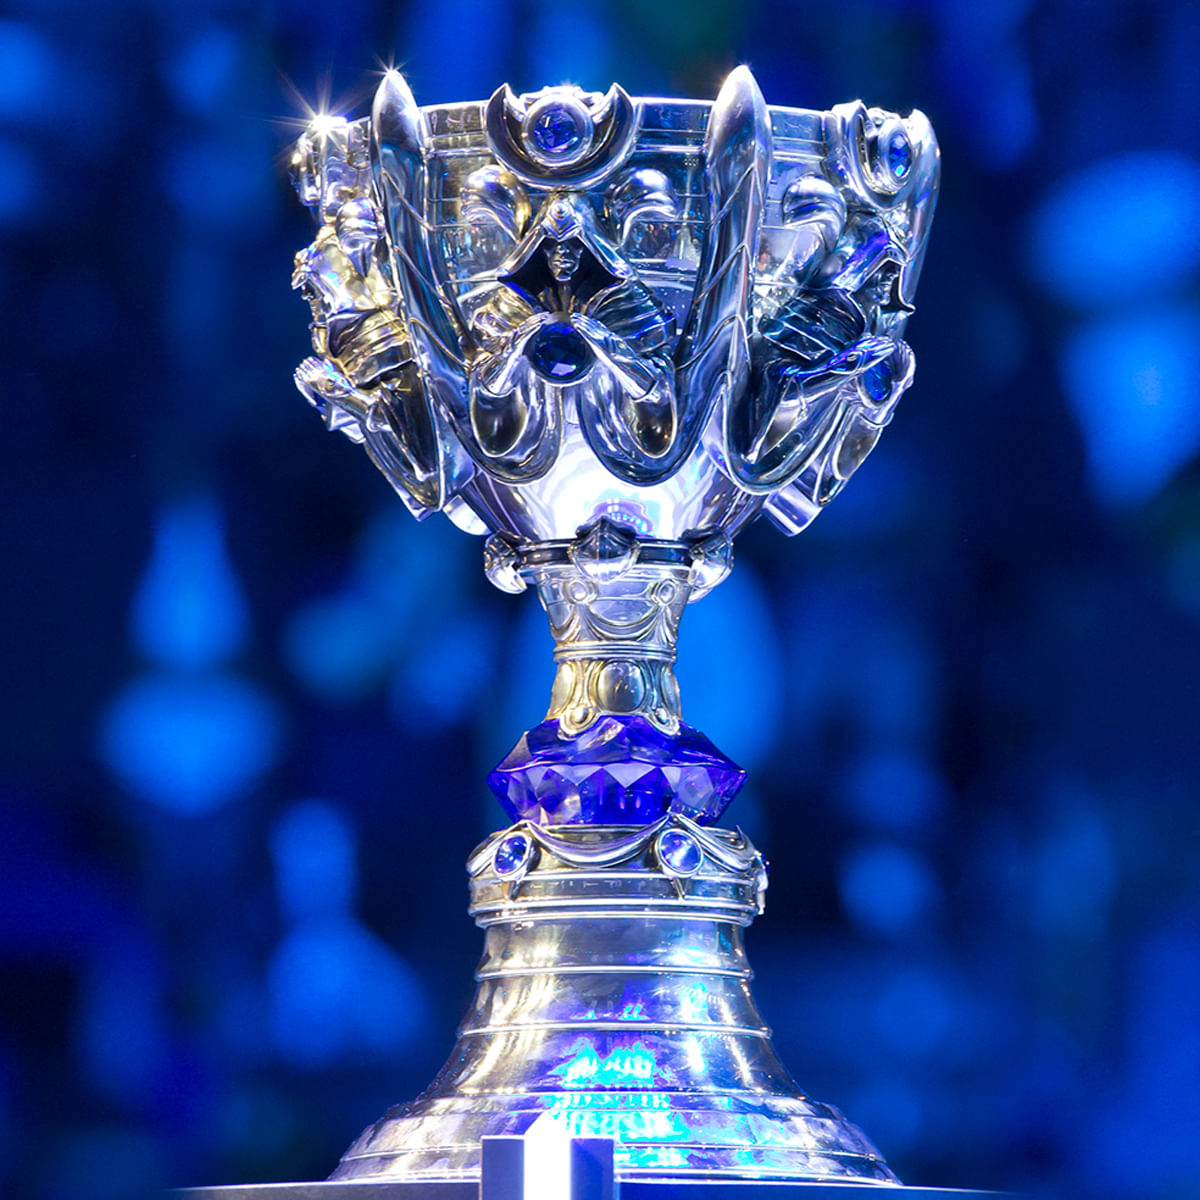 Designers Makers Of League Of Legends Summoners Cup